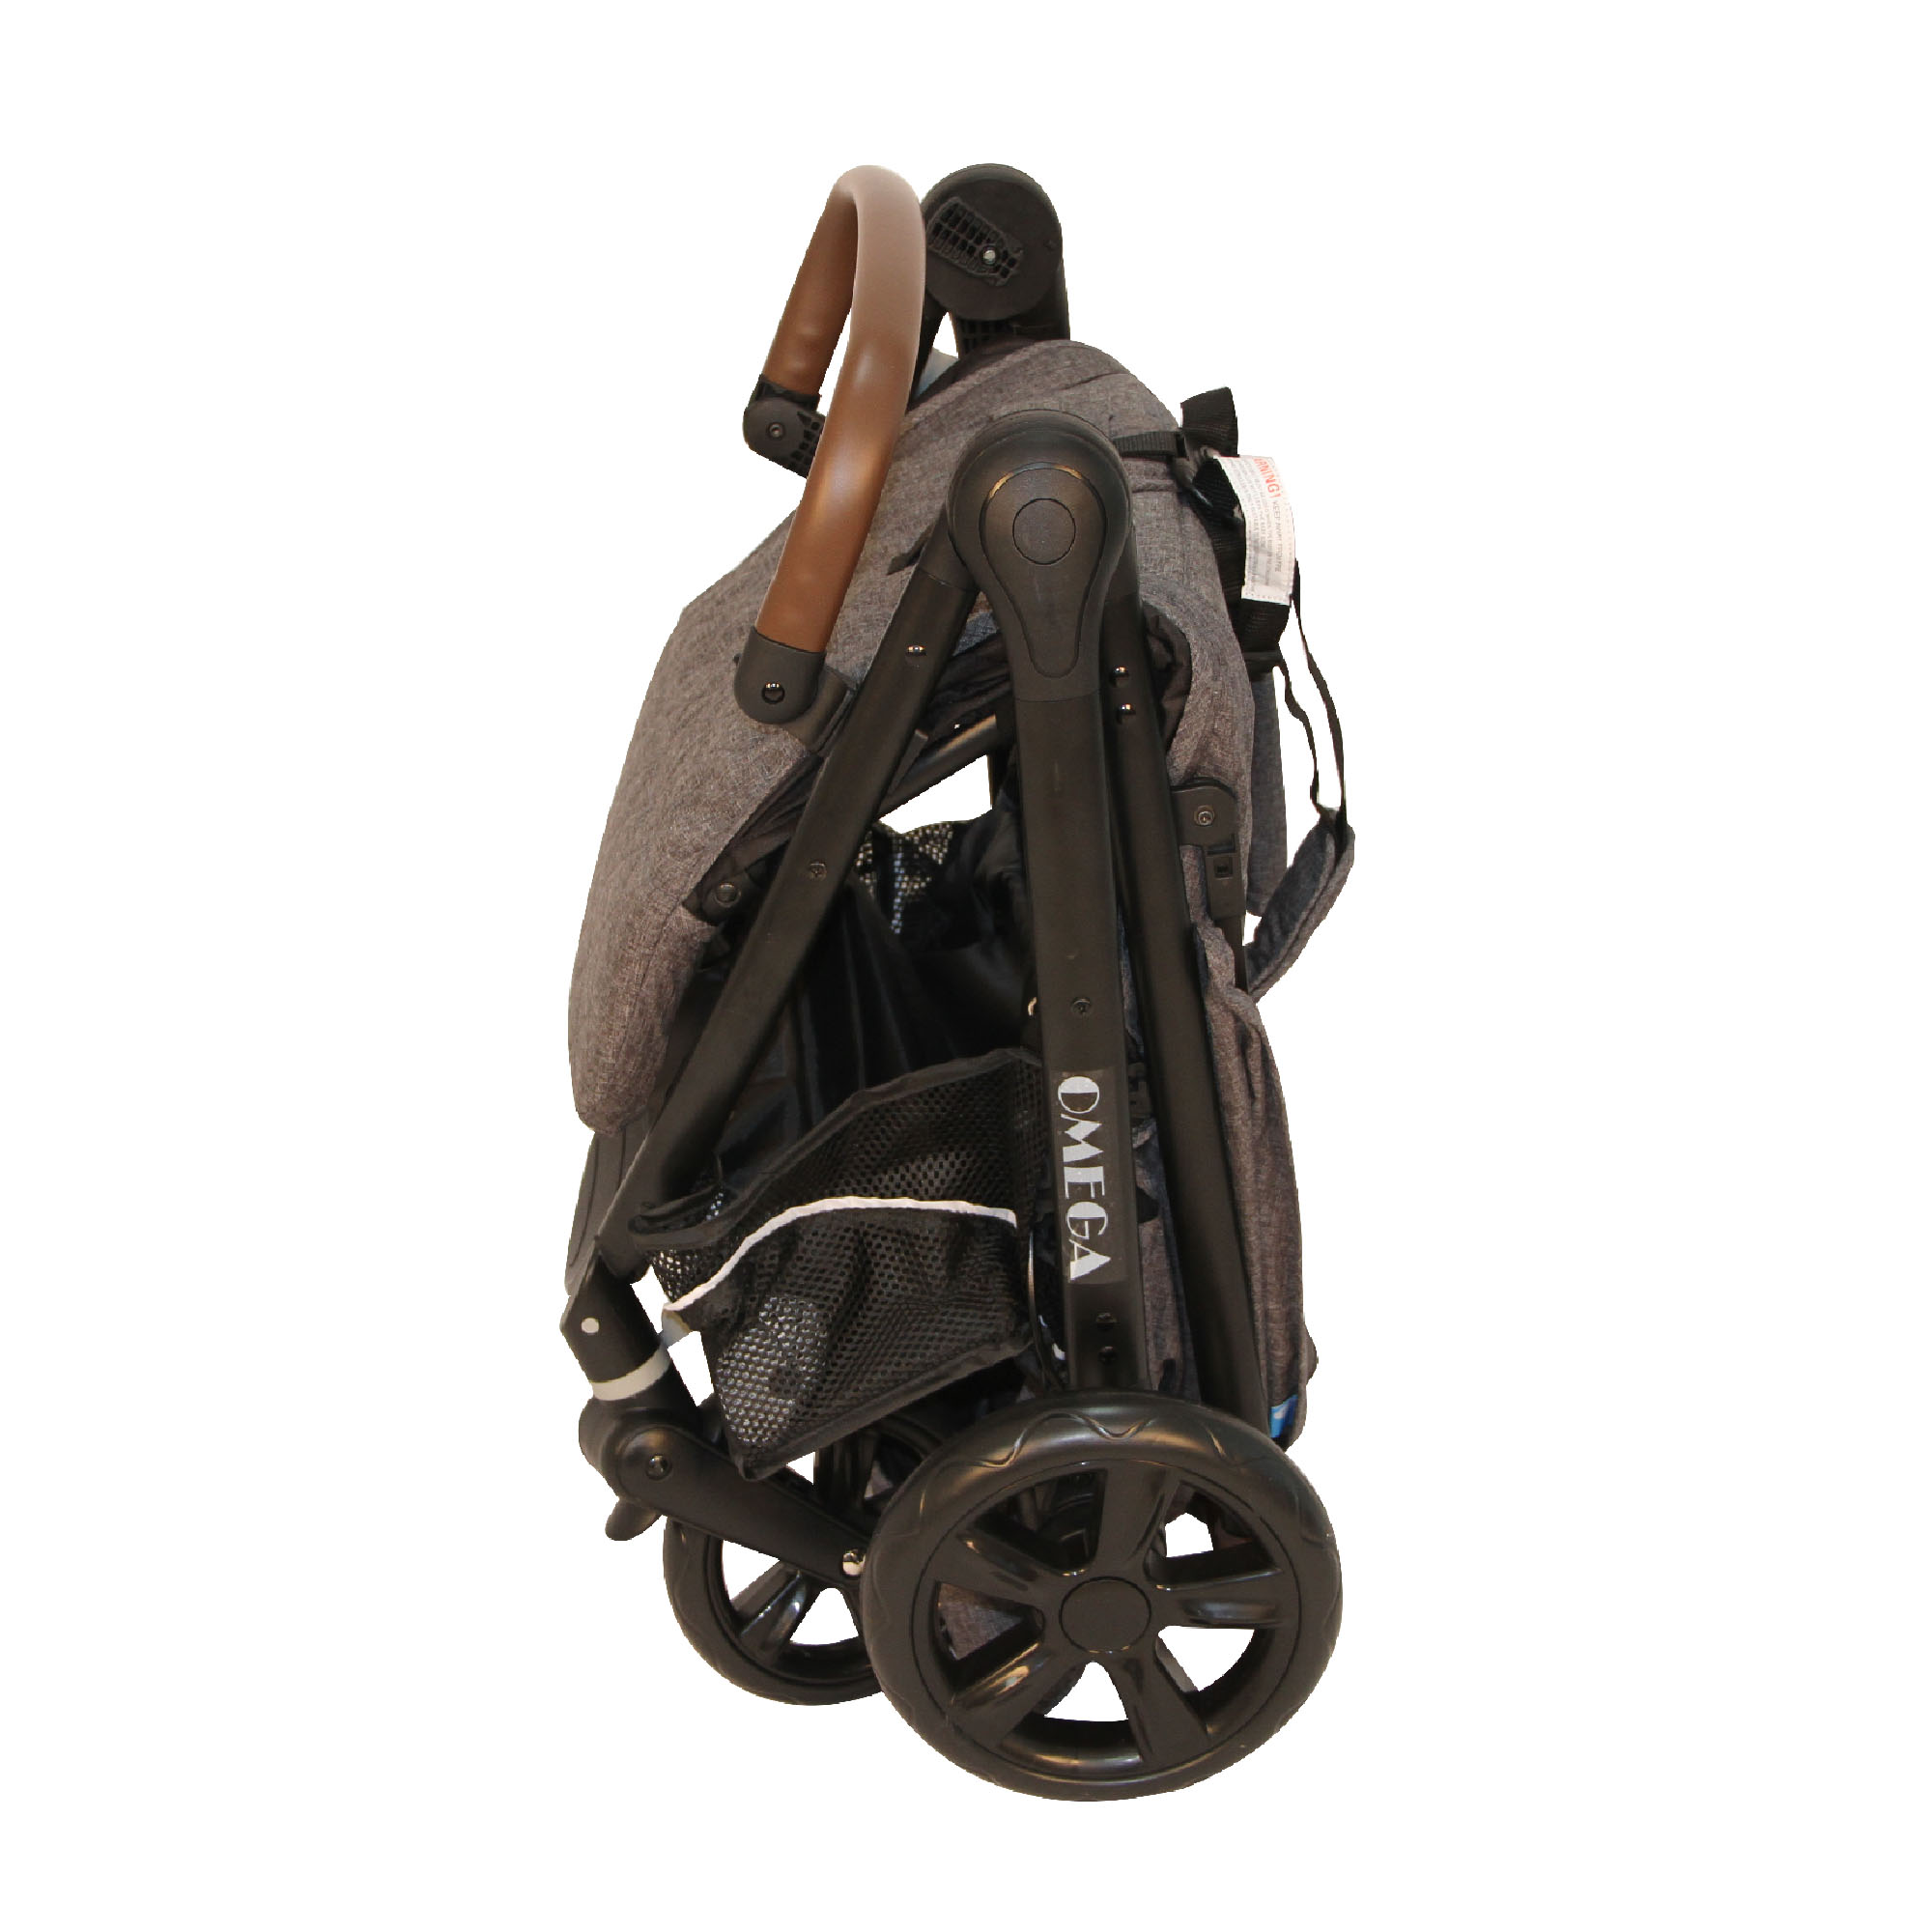 Coche Travel System 3 en 1 Omega RS-13795-3 Negro